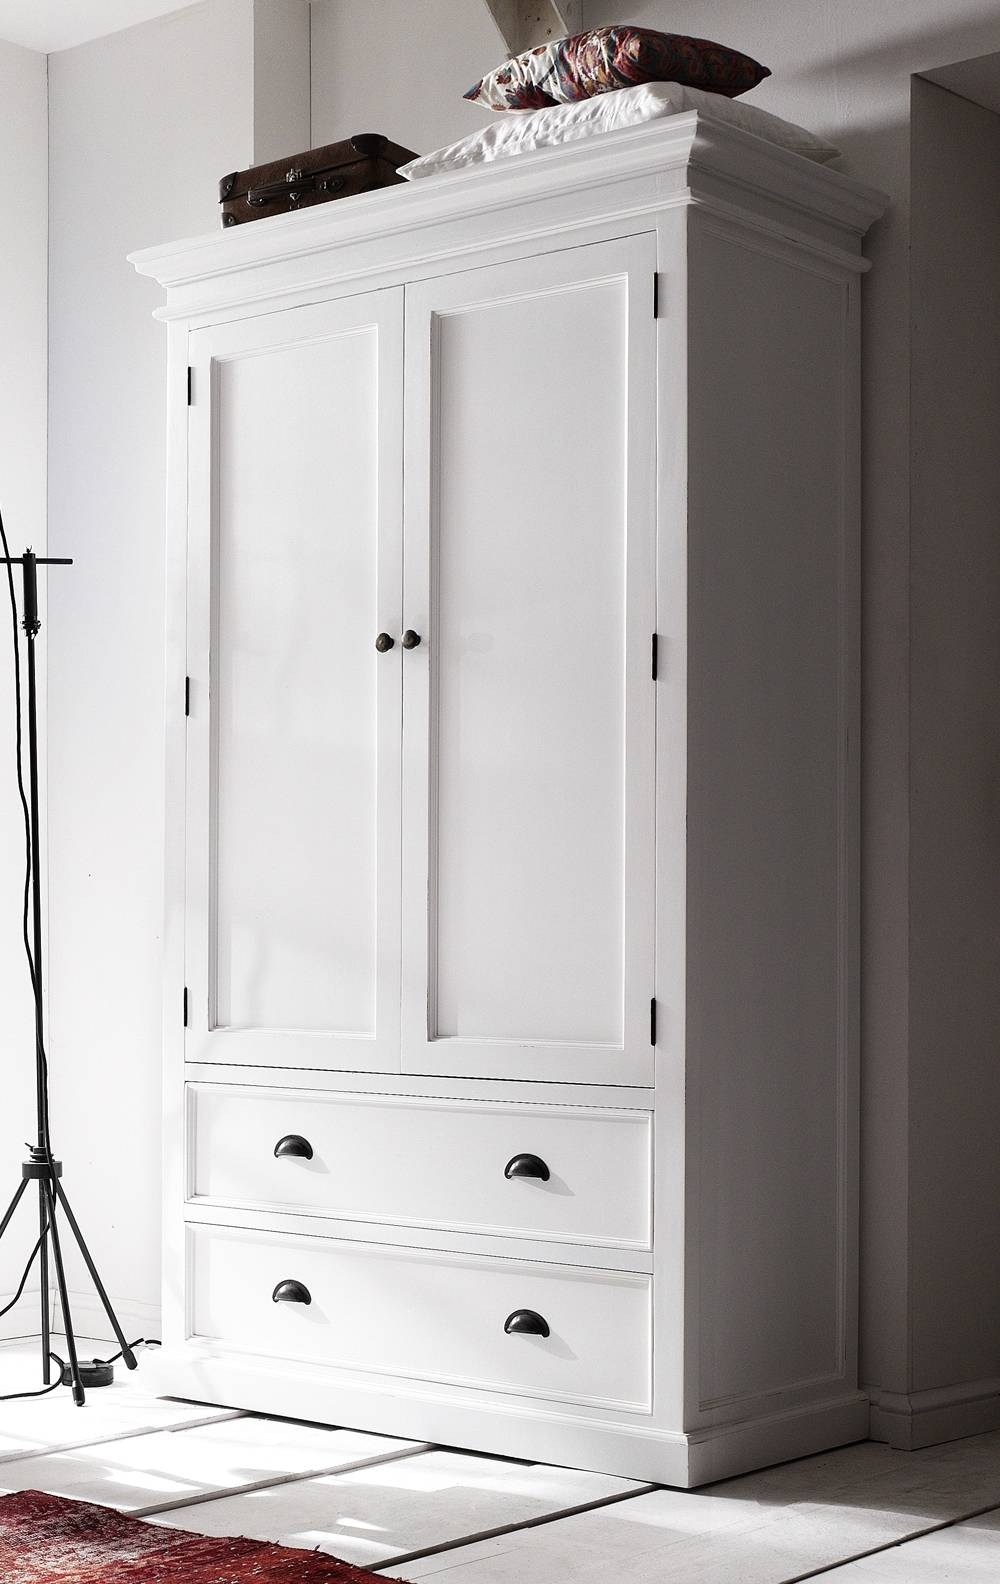 White Painted Wardrobe With 2 Drawers - Belgravia Painted regarding White Wood Wardrobes With Drawers (Image 14 of 15)